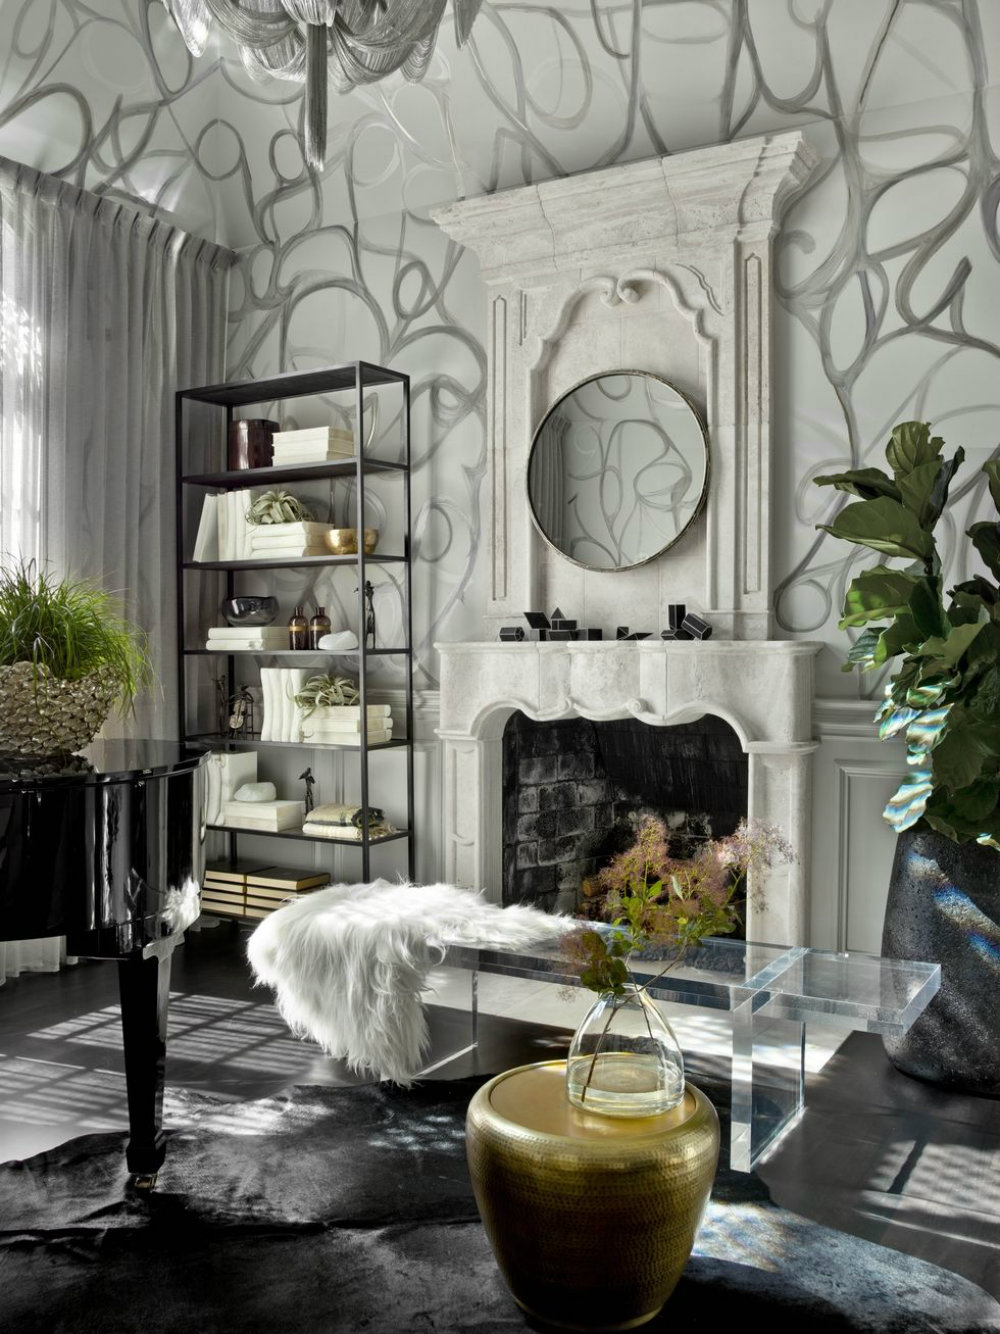 House Tour - A Glamorous and Edgy Chicago Home 08 chicago home House Tour - A Glamorous and Edgy Chicago Home House Tour A Glamorous and Edgy Chicago Home 08